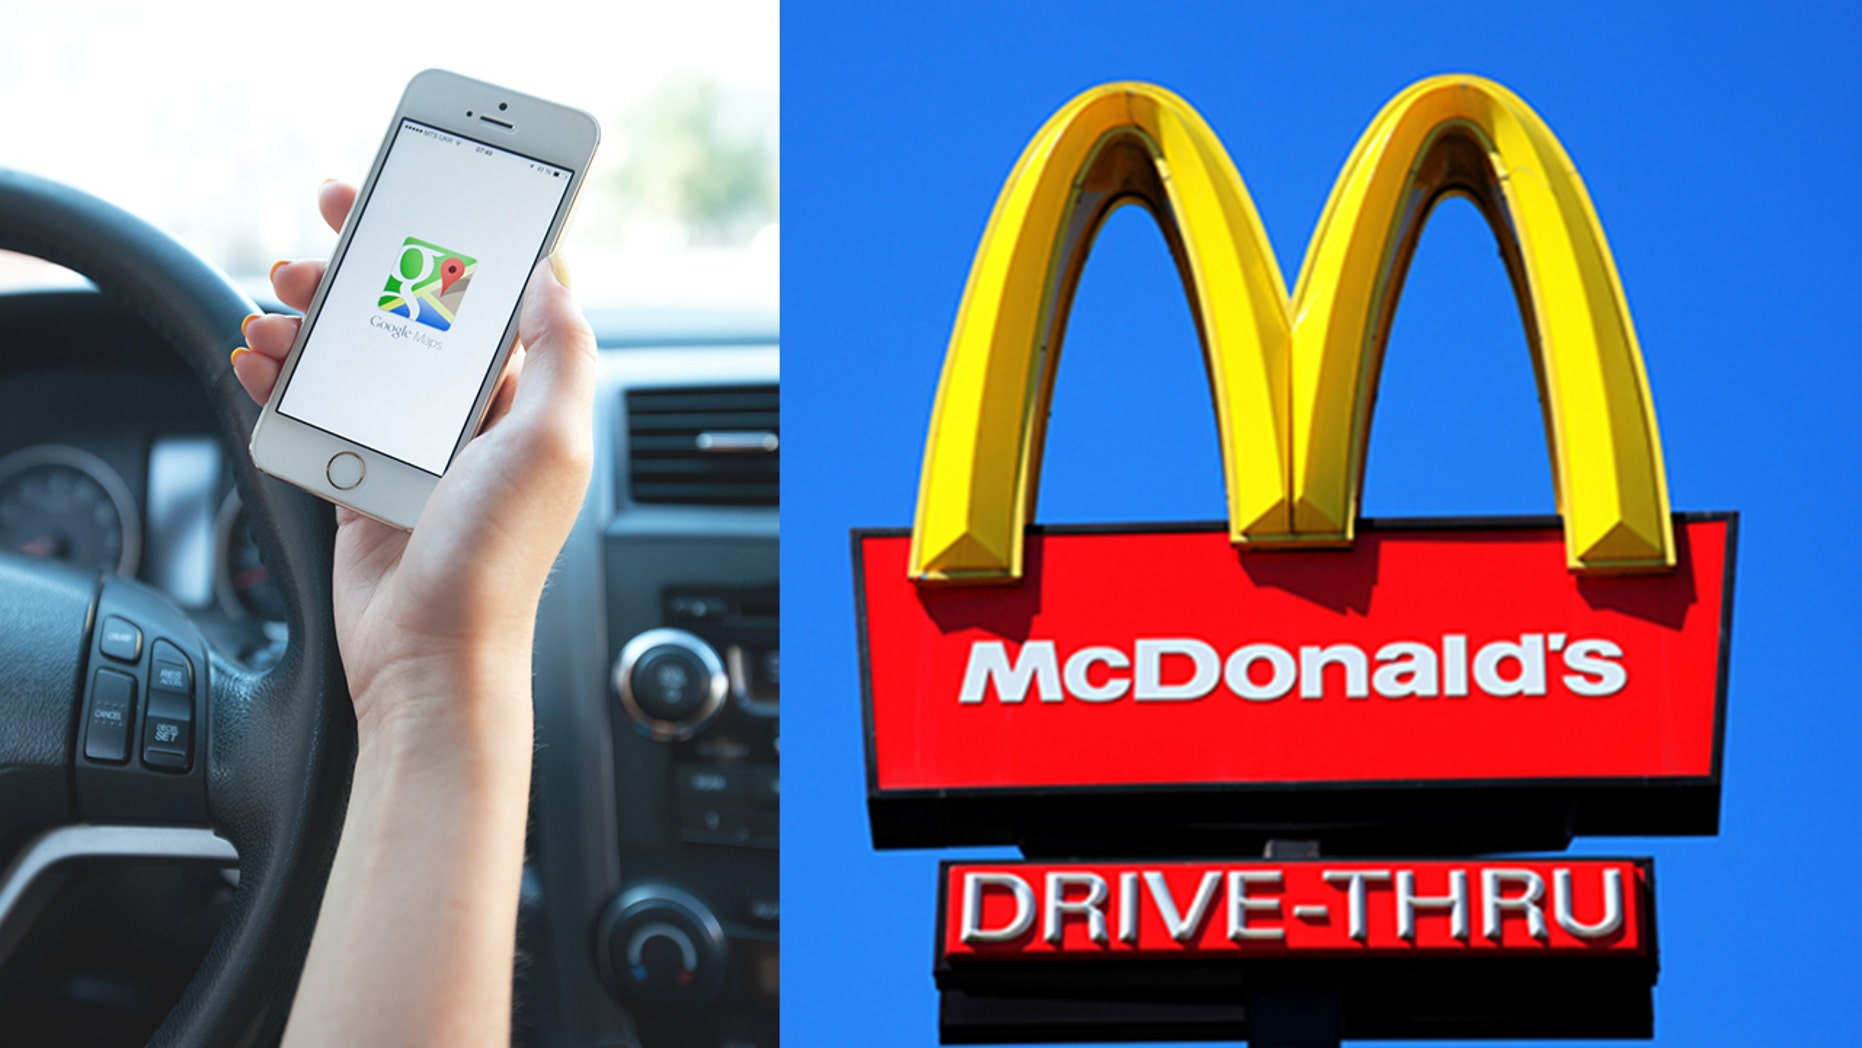 Google Maps is using well-known chain restaurants as a way to make navigation easier.